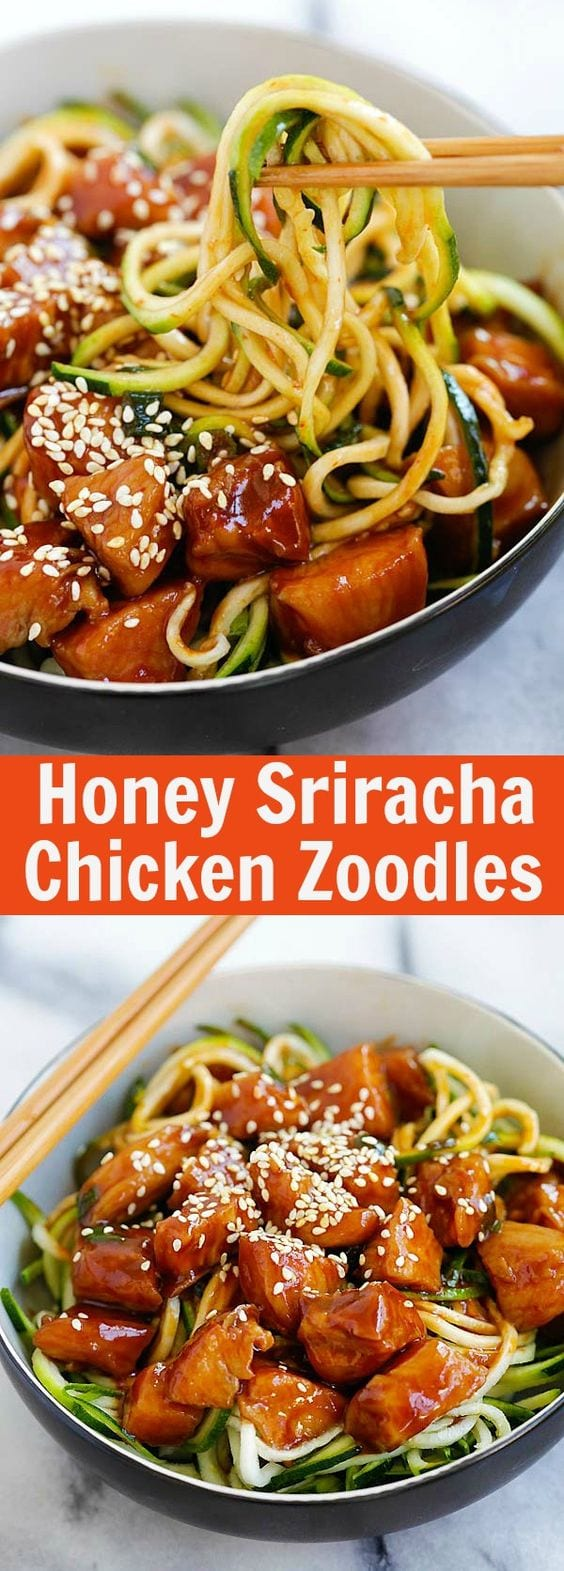 Honey sriracha chicken zucchini zoodles easy delicious recipes honey sriracha chicken zucchini noodles healthy zoodles with sweet and spicy honey sriracha chicken forumfinder Choice Image